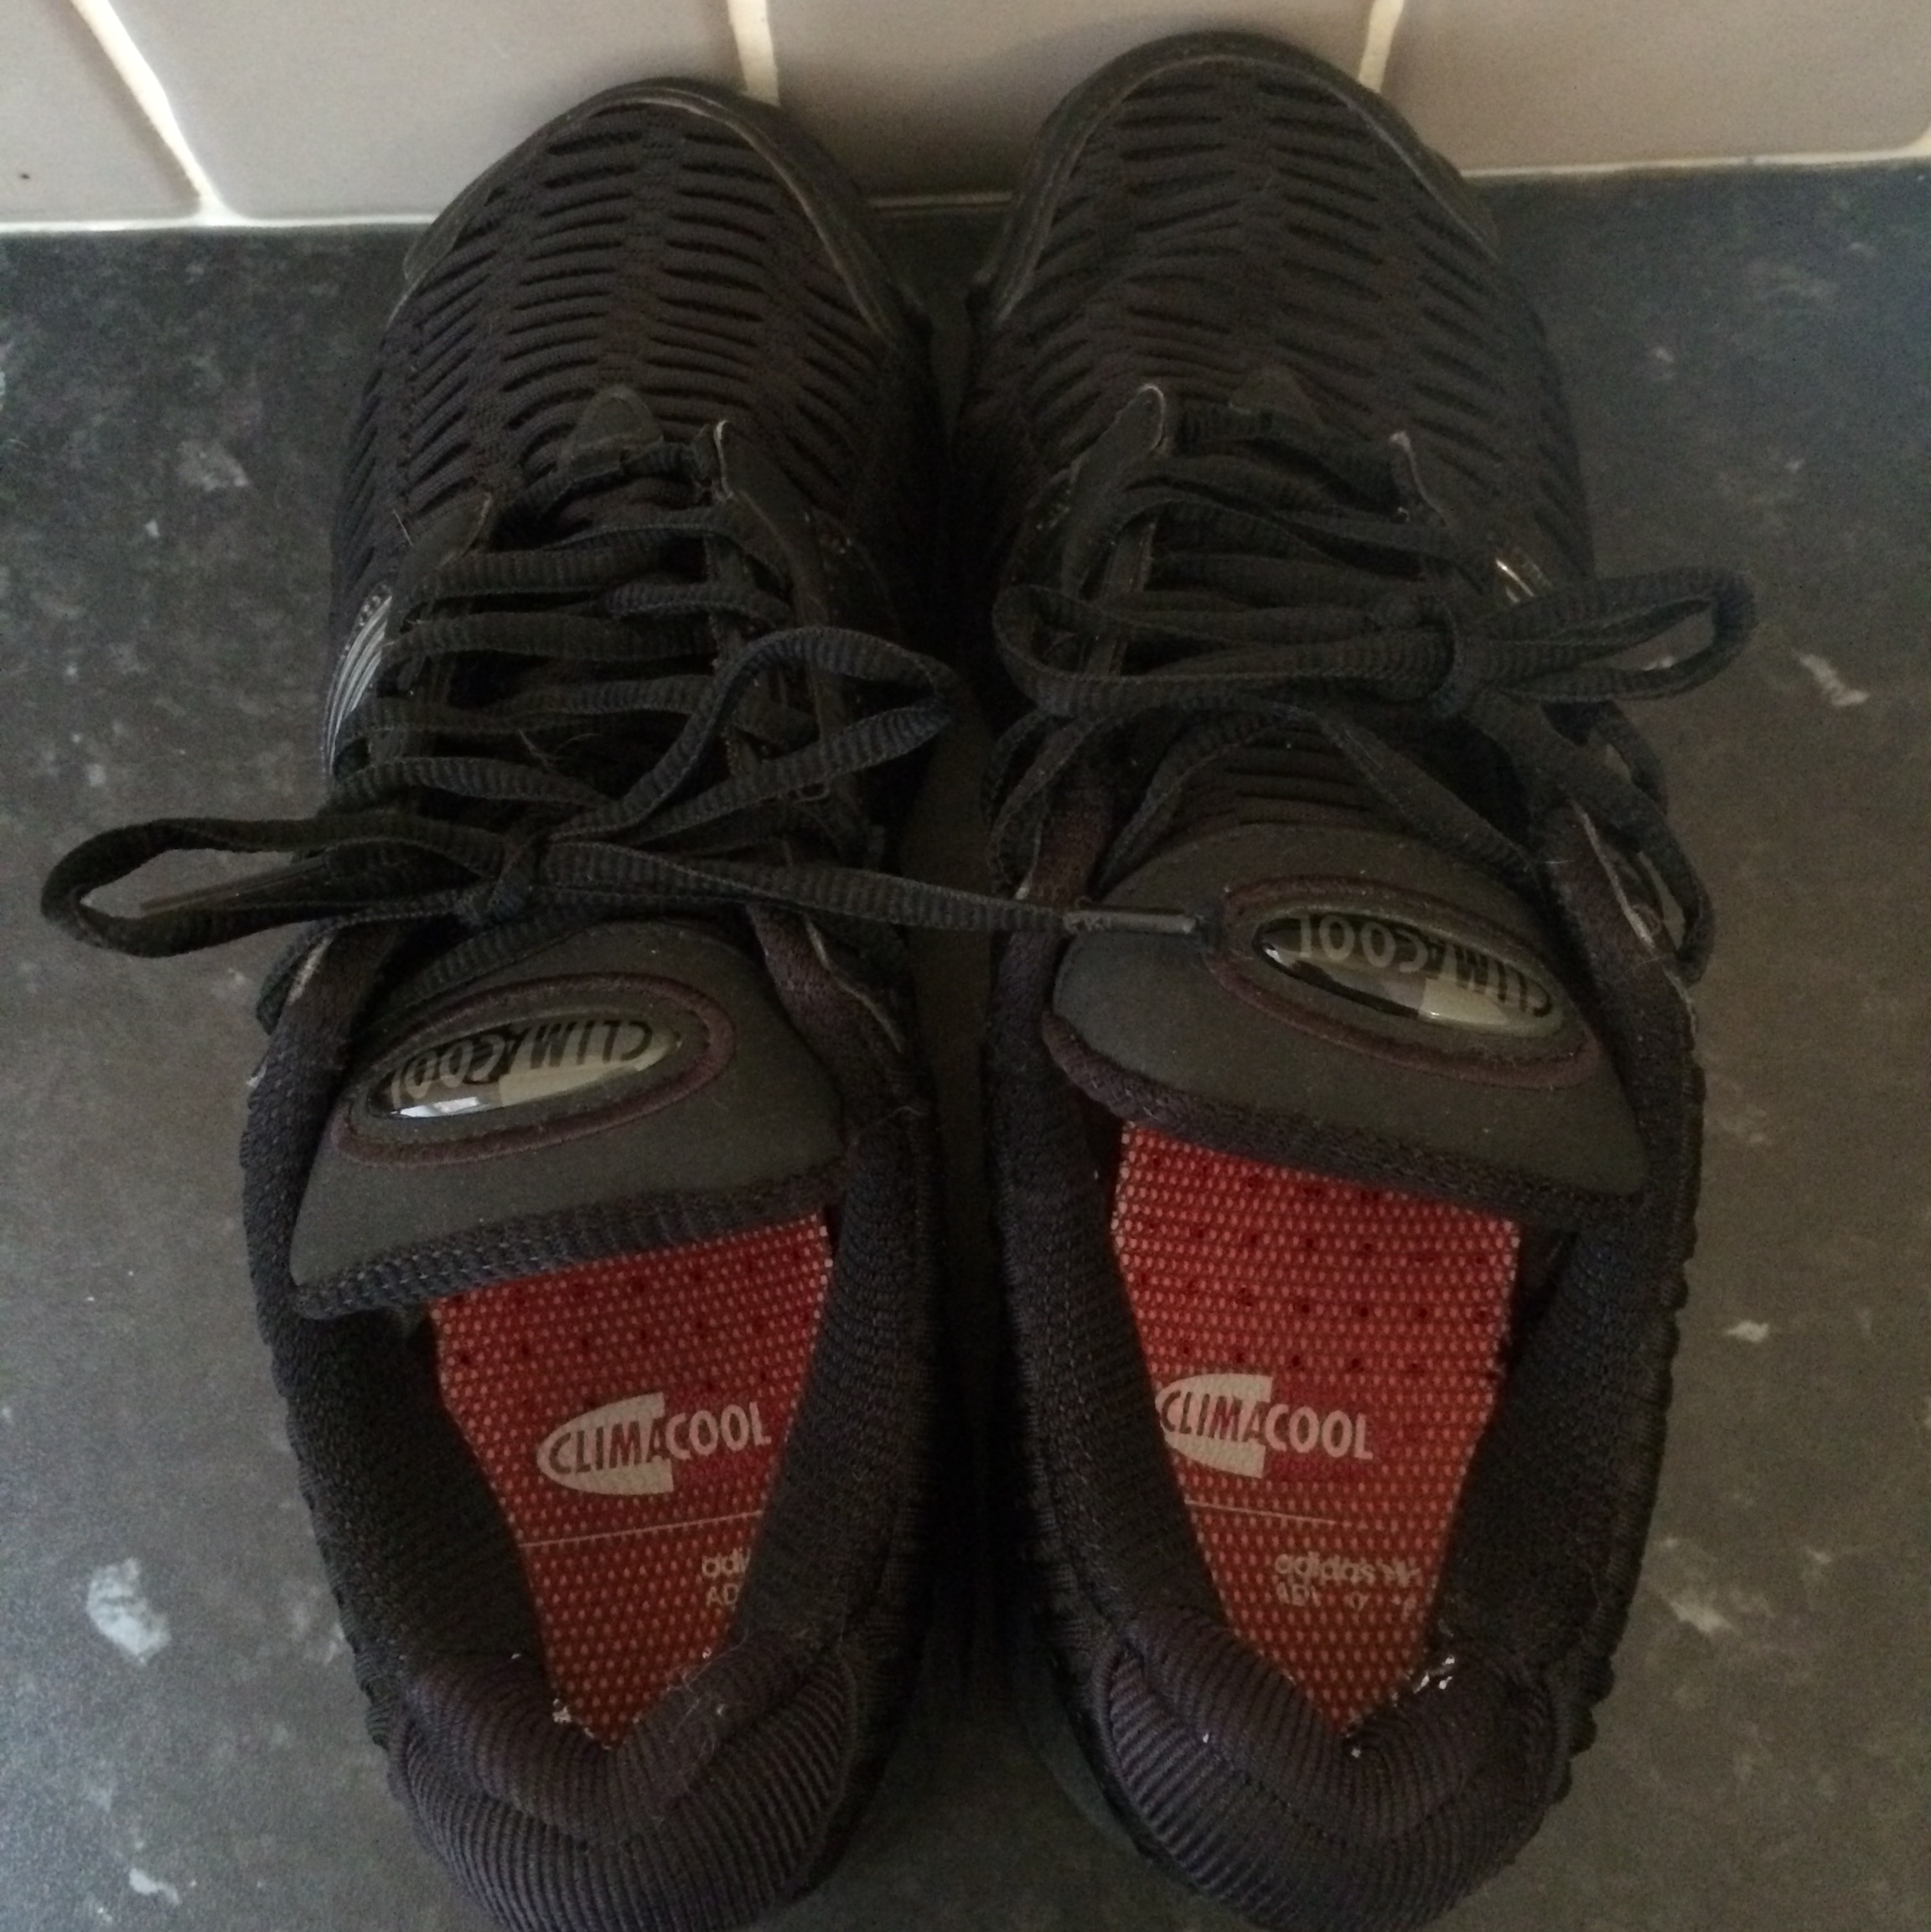 adidas climacool in triple black uk size 8 worn but Depop